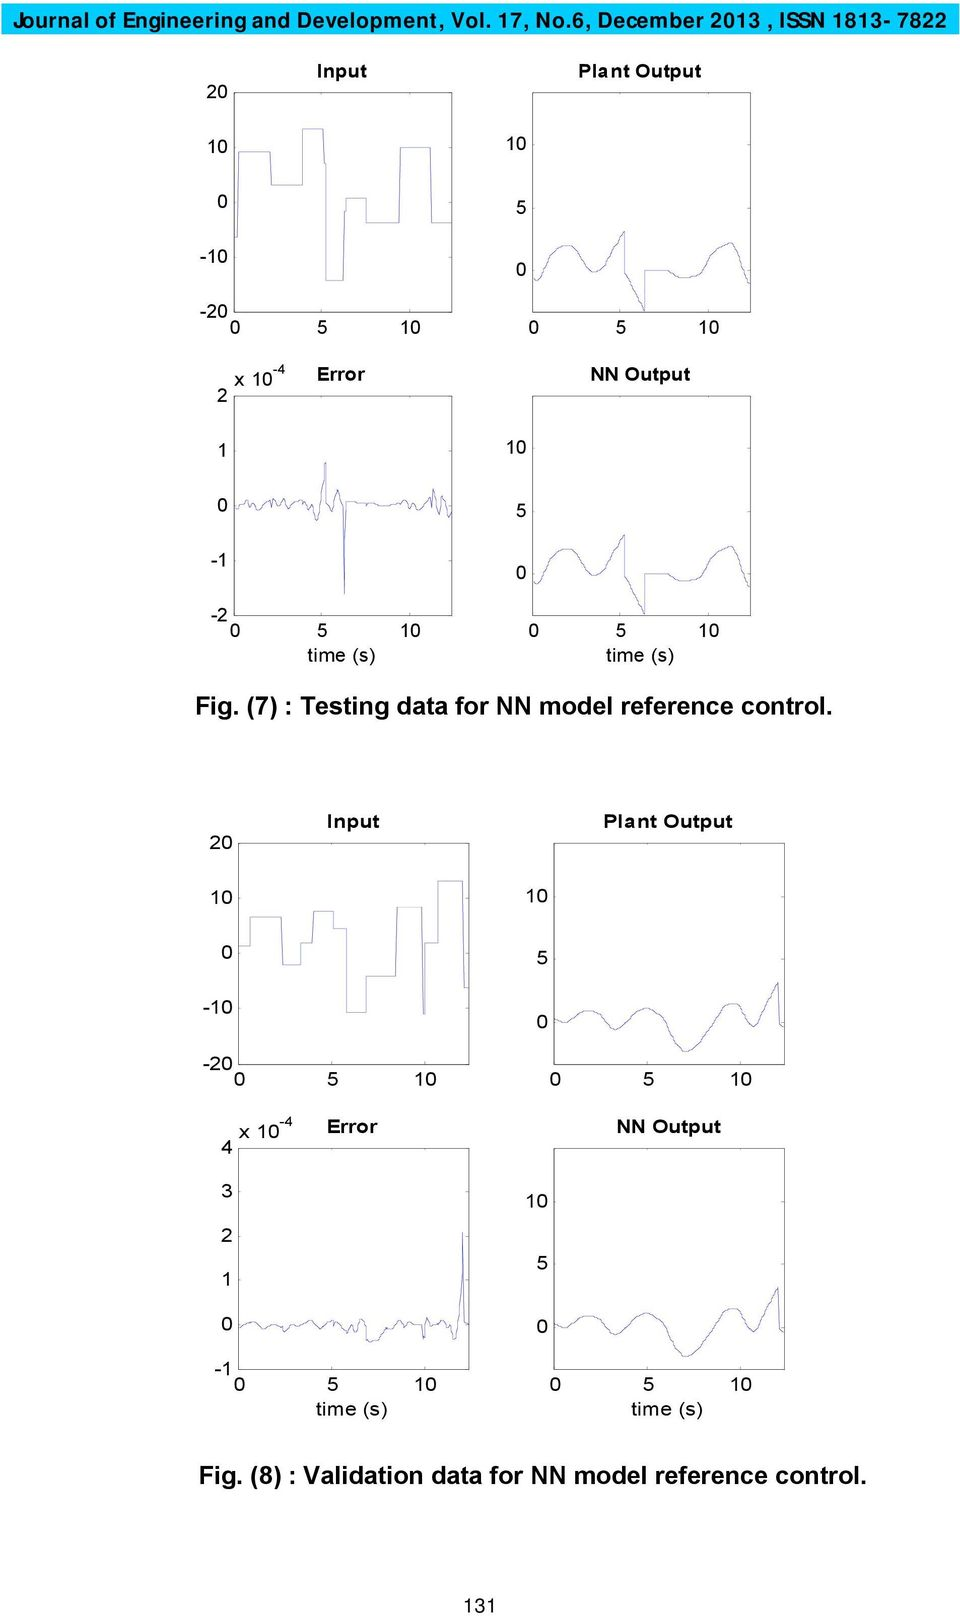 Output - -2 Fig. (7) : Testing data for NN model reference control.